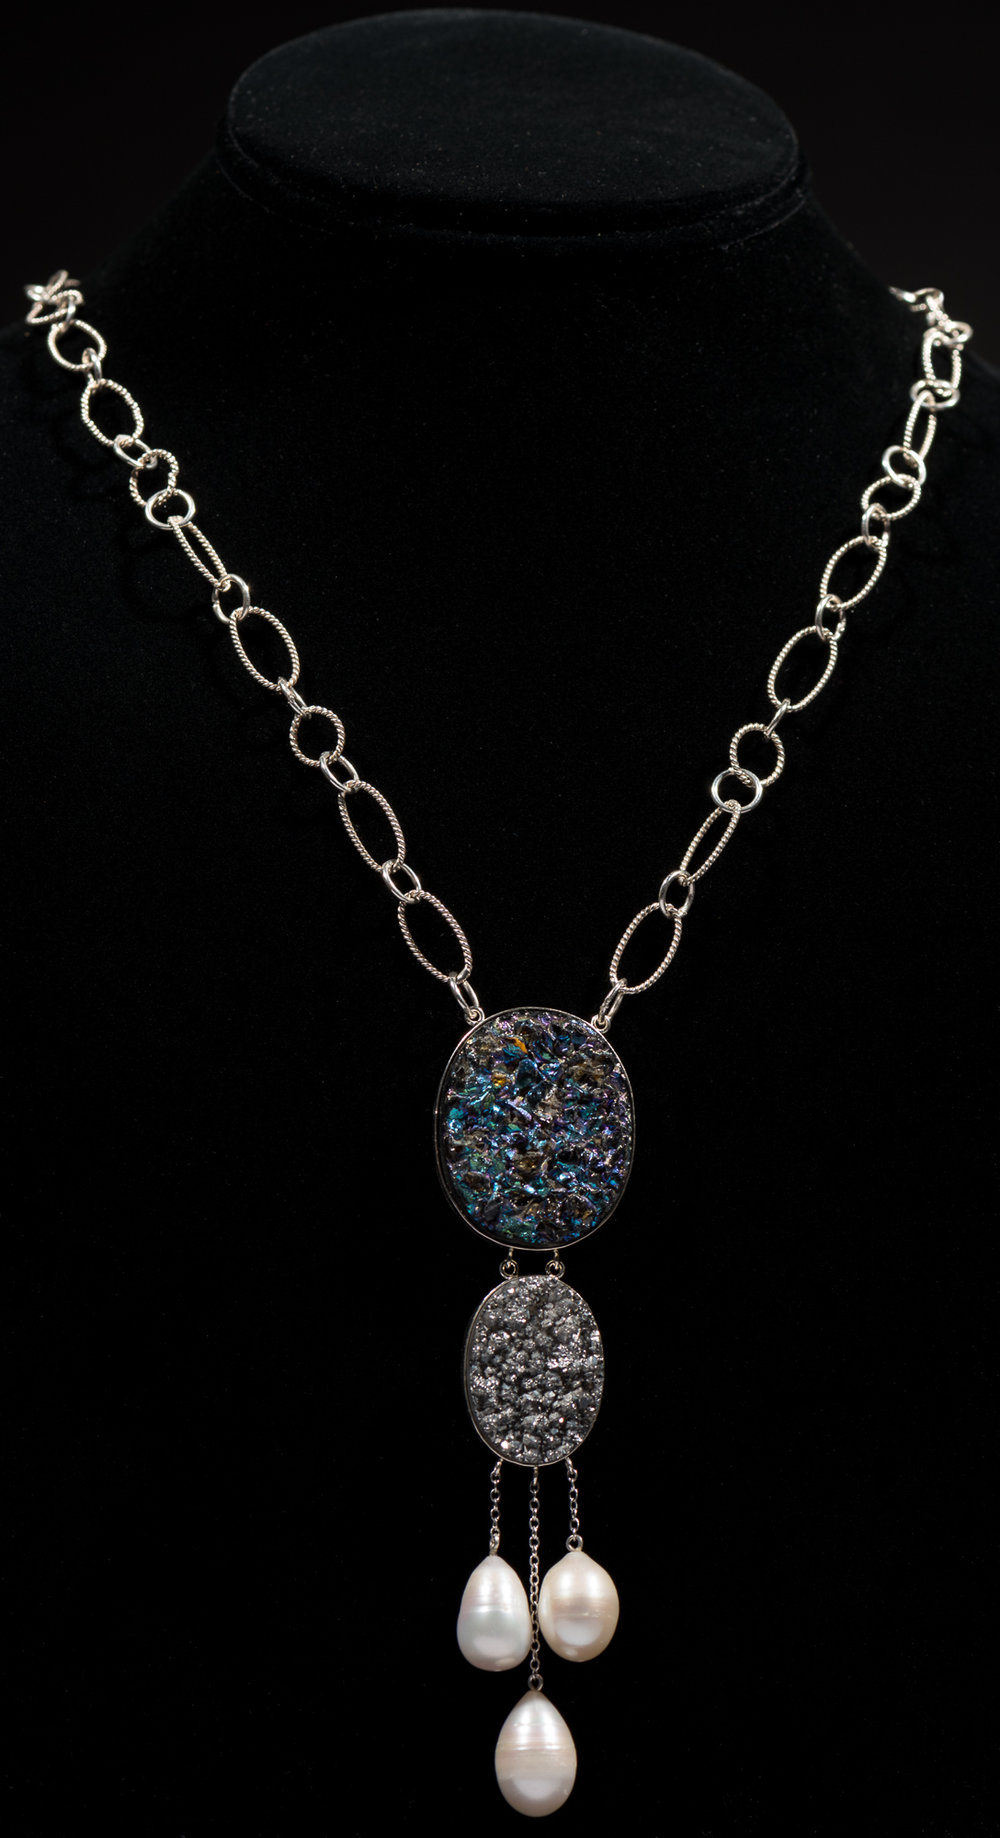 Sterling silver chain with druzy encased in sterling silver and freshwater pearl drop